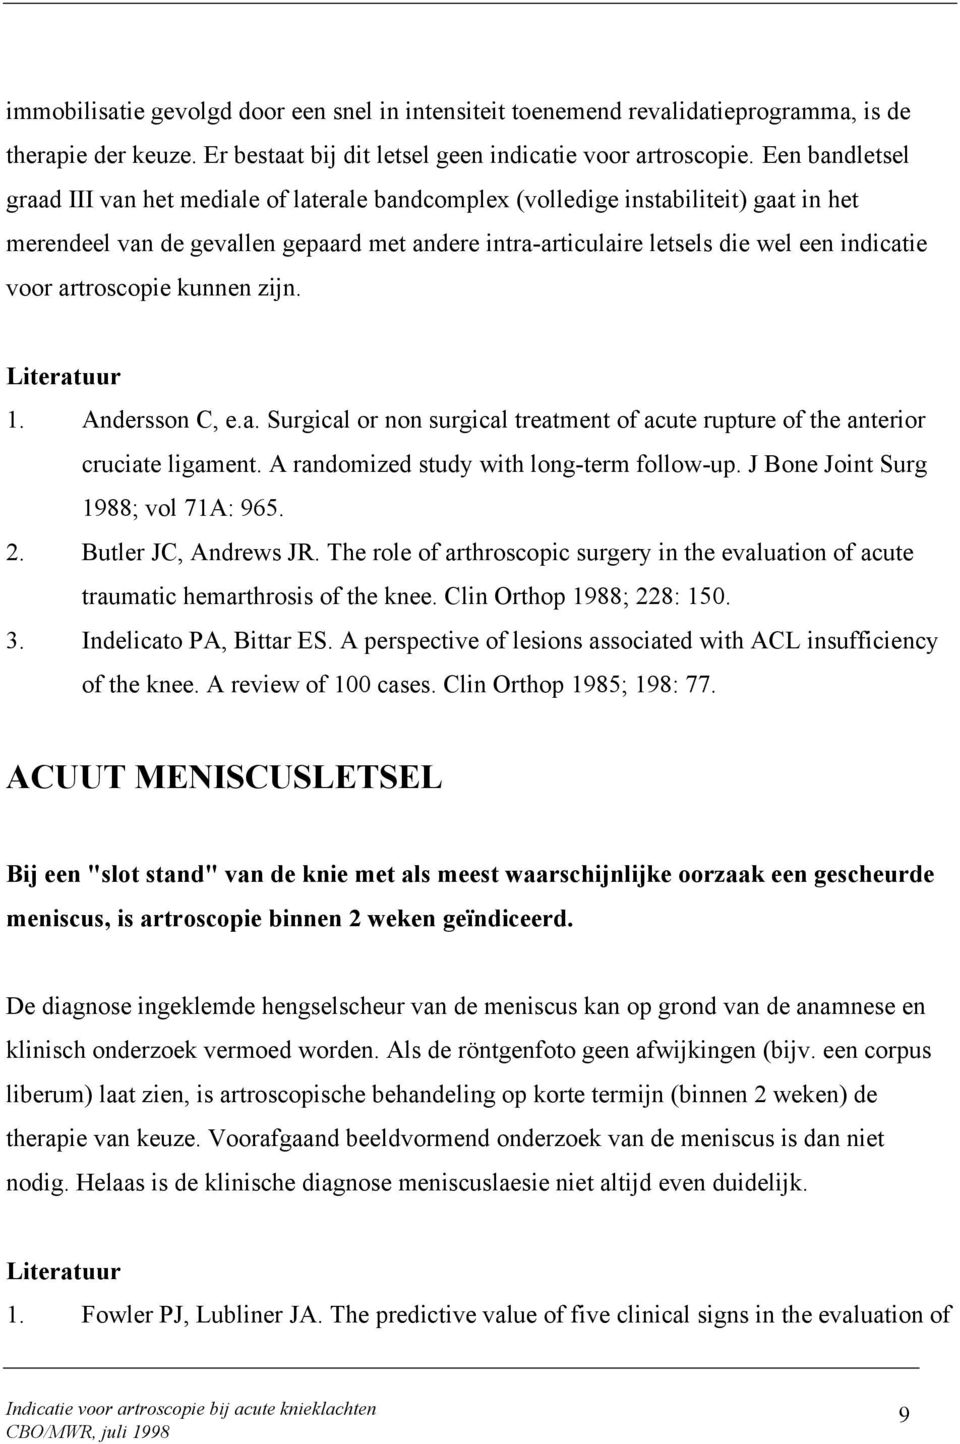 voor artroscopie kunnen zijn. 1. Andersson C, e.a. Surgical or non surgical treatment of acute rupture of the anterior cruciate ligament. A randomized study with long-term follow-up.